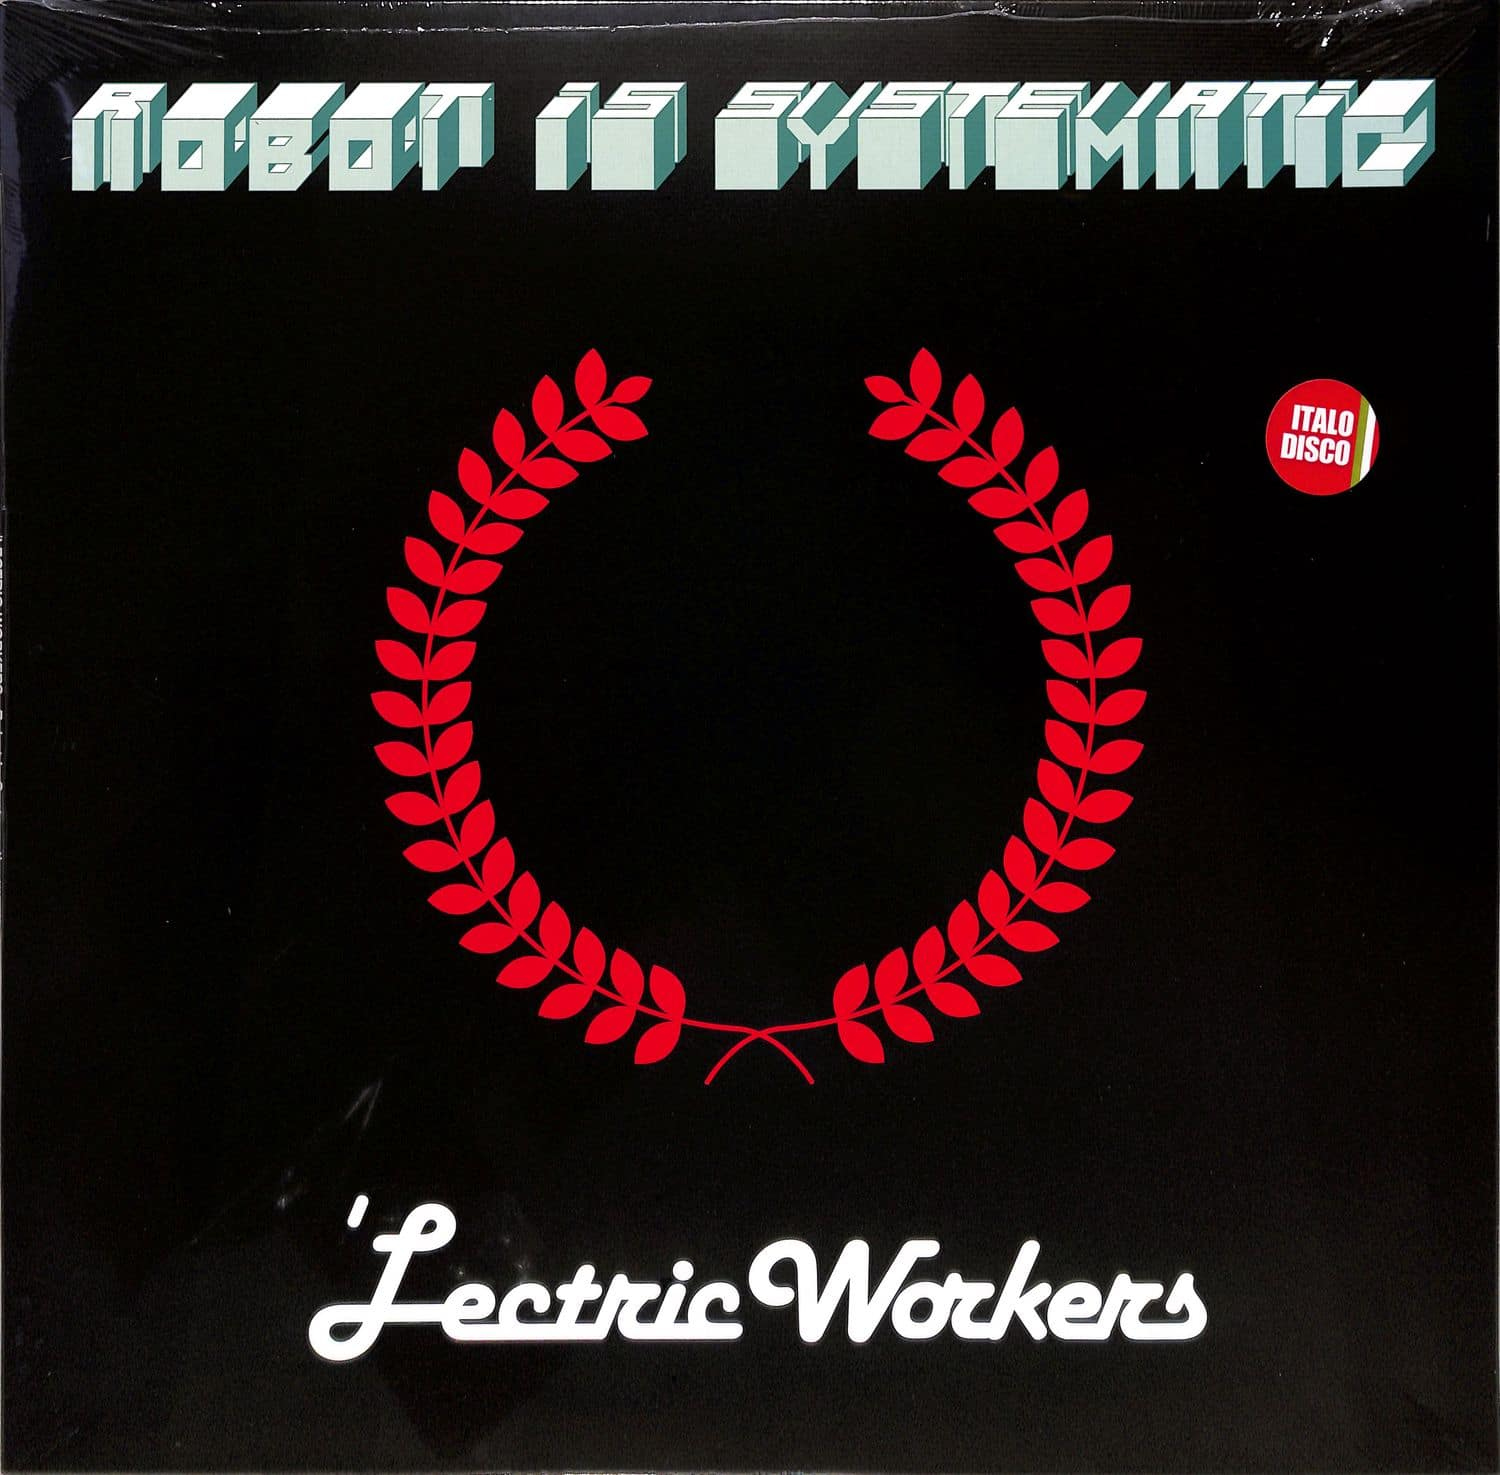 Lectric Workers - ROBOT IS SYSTEMATIC